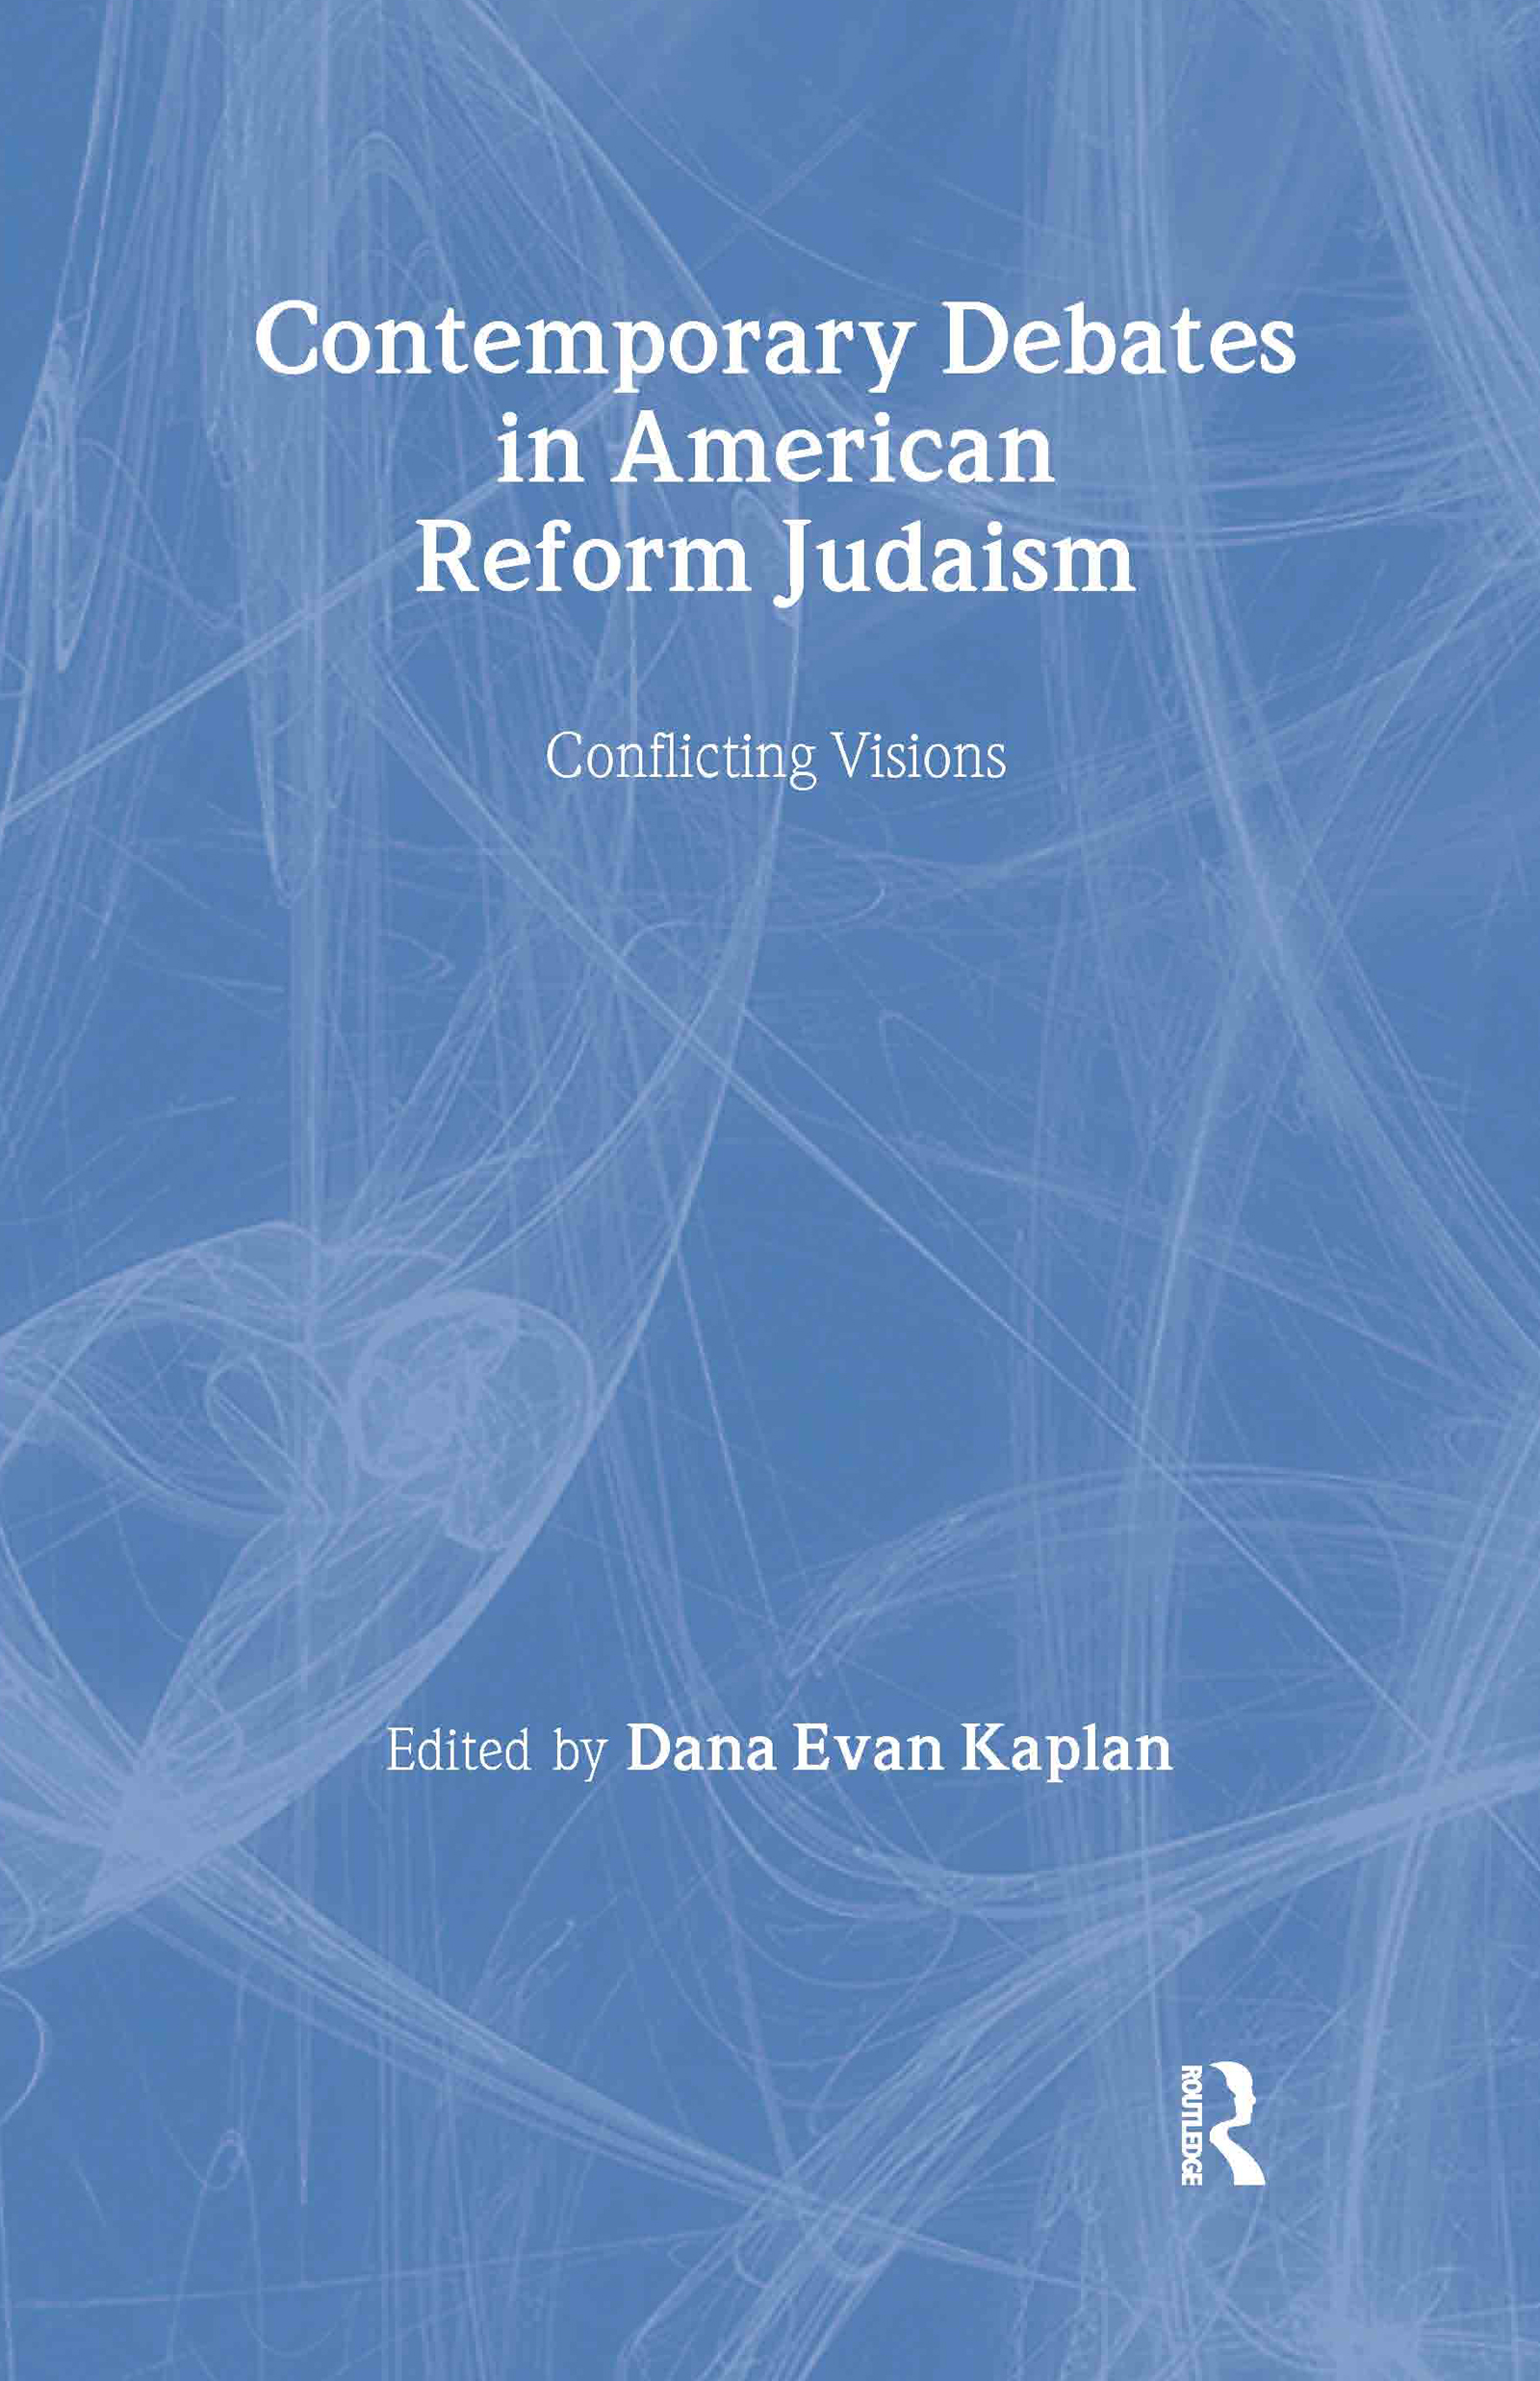 A Religious and Social Profile of Reform Judaism in the United States